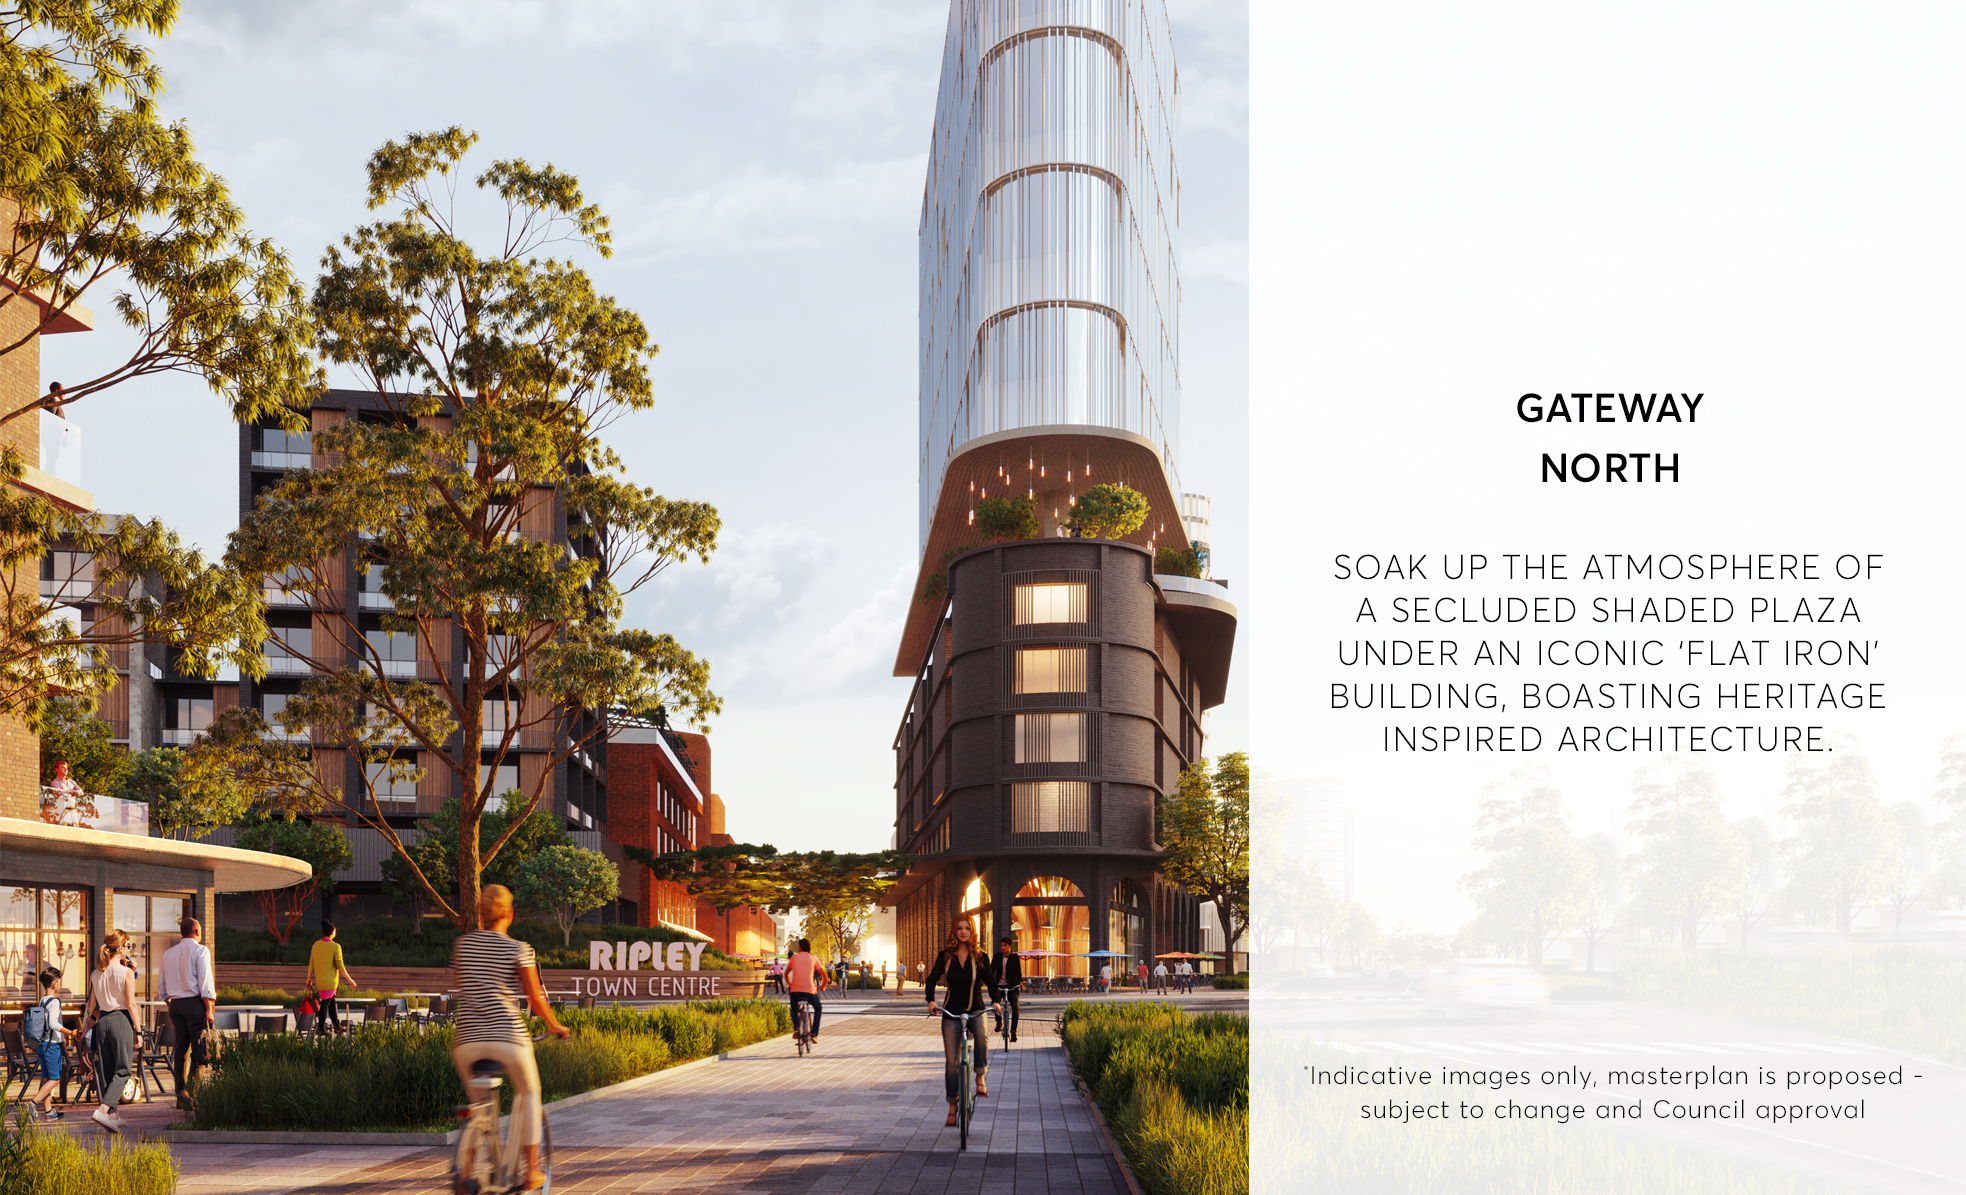 Gateway North - Ripley Town Centre - Artist Impression (subject to change and Council approval)